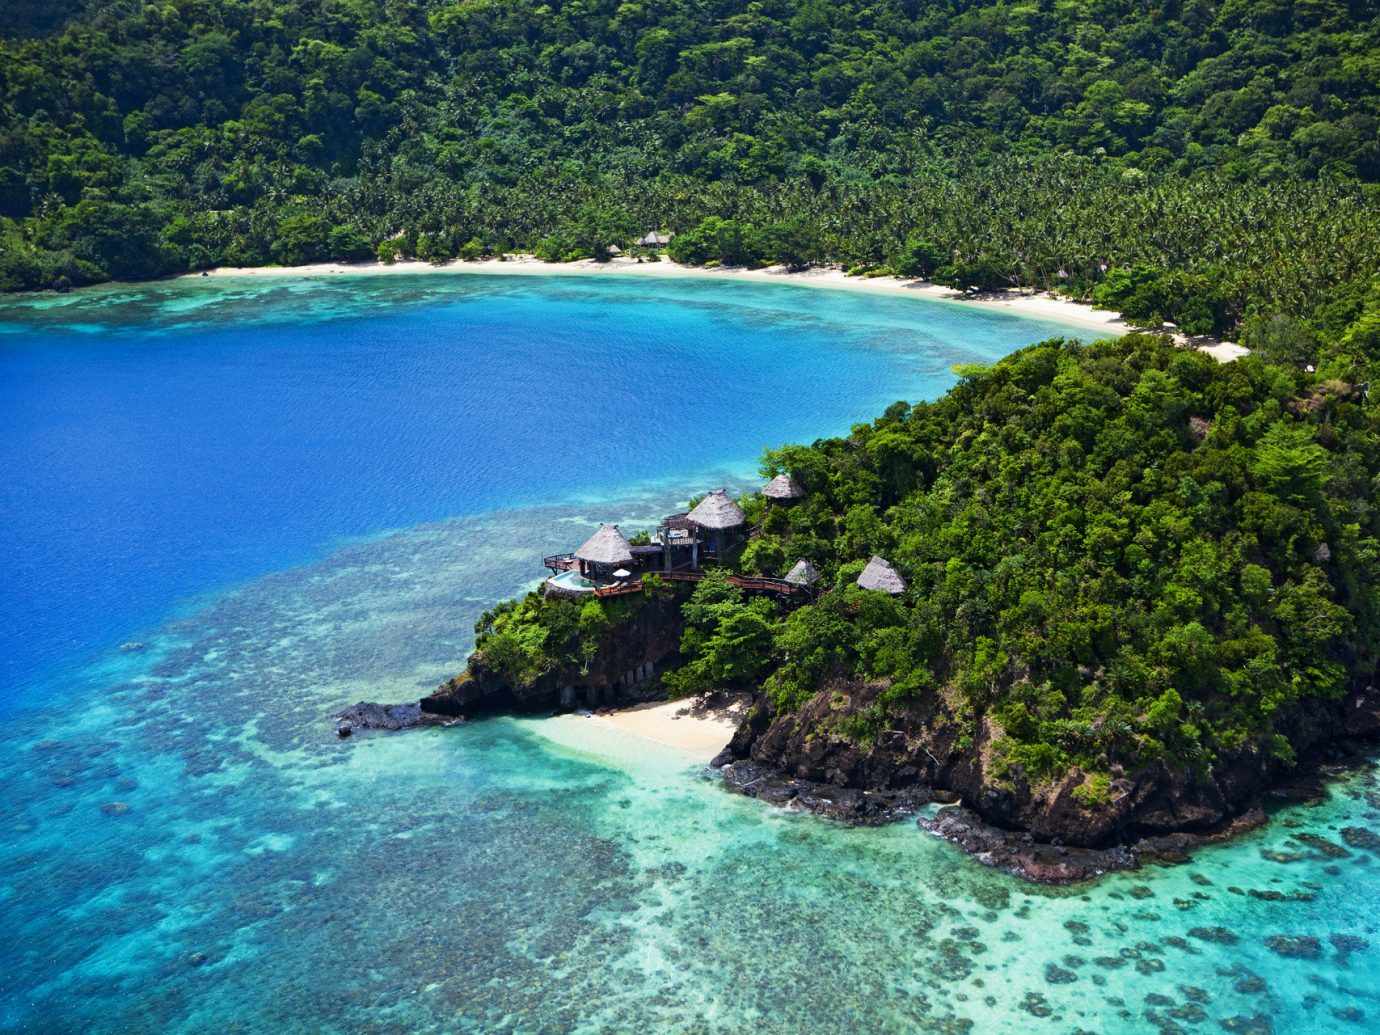 Beach clear water Greenery Hotels isolation Luxury Travel Ocean quaint remote serene Tropical turquoise white sands water tree outdoor Nature reef geographical feature landform Lake body of water River archipelago Sea Coast pond bay islet Lagoon Island floating tropics caribbean cove cape shore surrounded swimming